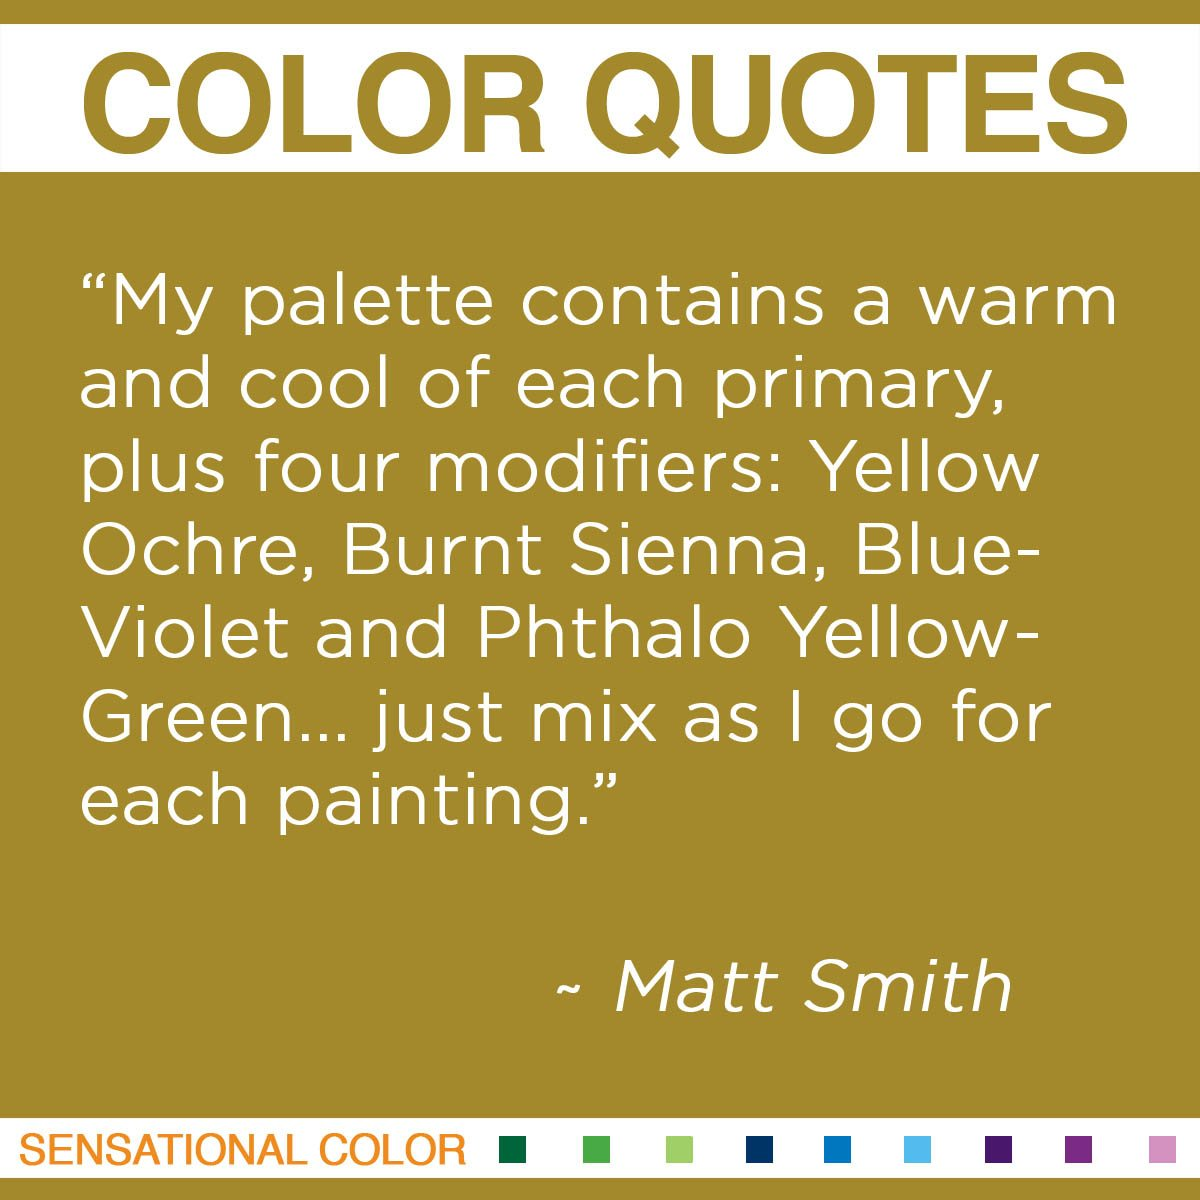 """My palette contains a warm and cool of each primary, plus four modifiers: Yellow Ochre, Burnt Sienna, Blue-Violet and Phthalo Yellow-Green… just mix as I go for each painting."" - Matt Smith"